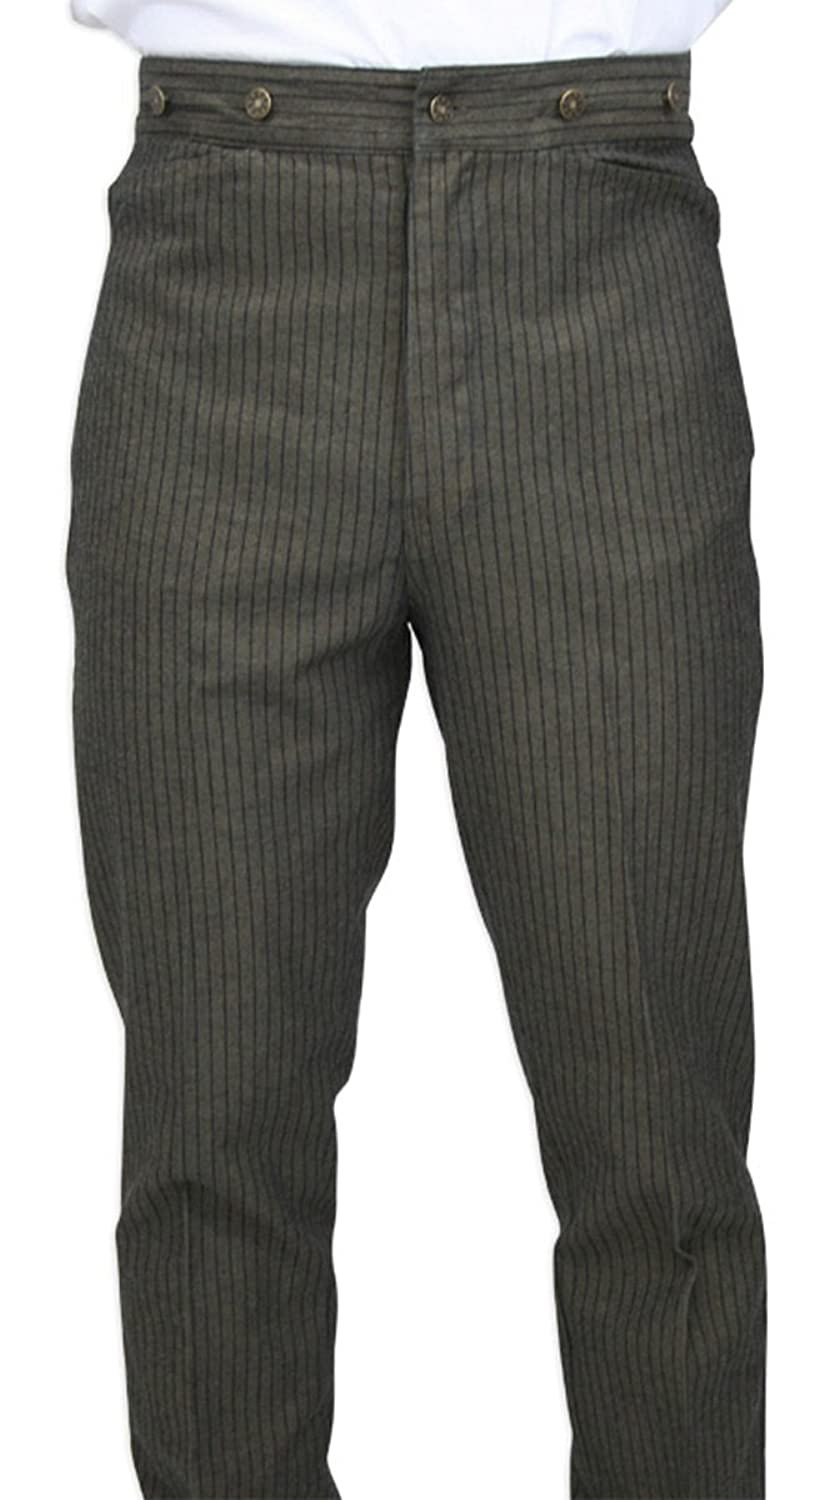 b457707b2 Men's Vintage Pants, Trousers, Jeans, Overalls High Waist Cotton Ludlow  Striped Trousers $59.95